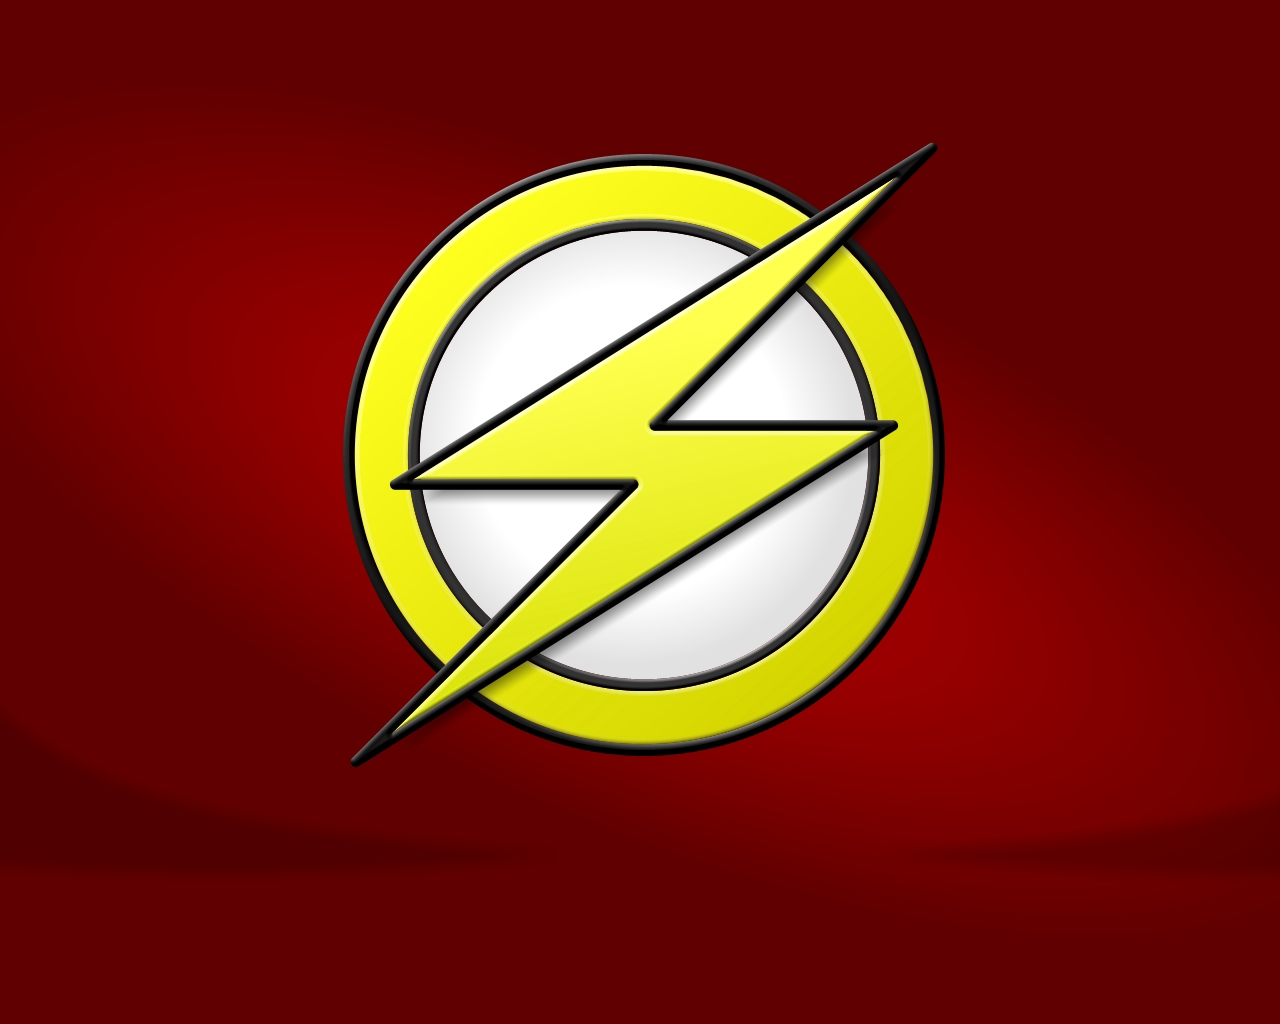 Valois blog the flash logo 1280x1024